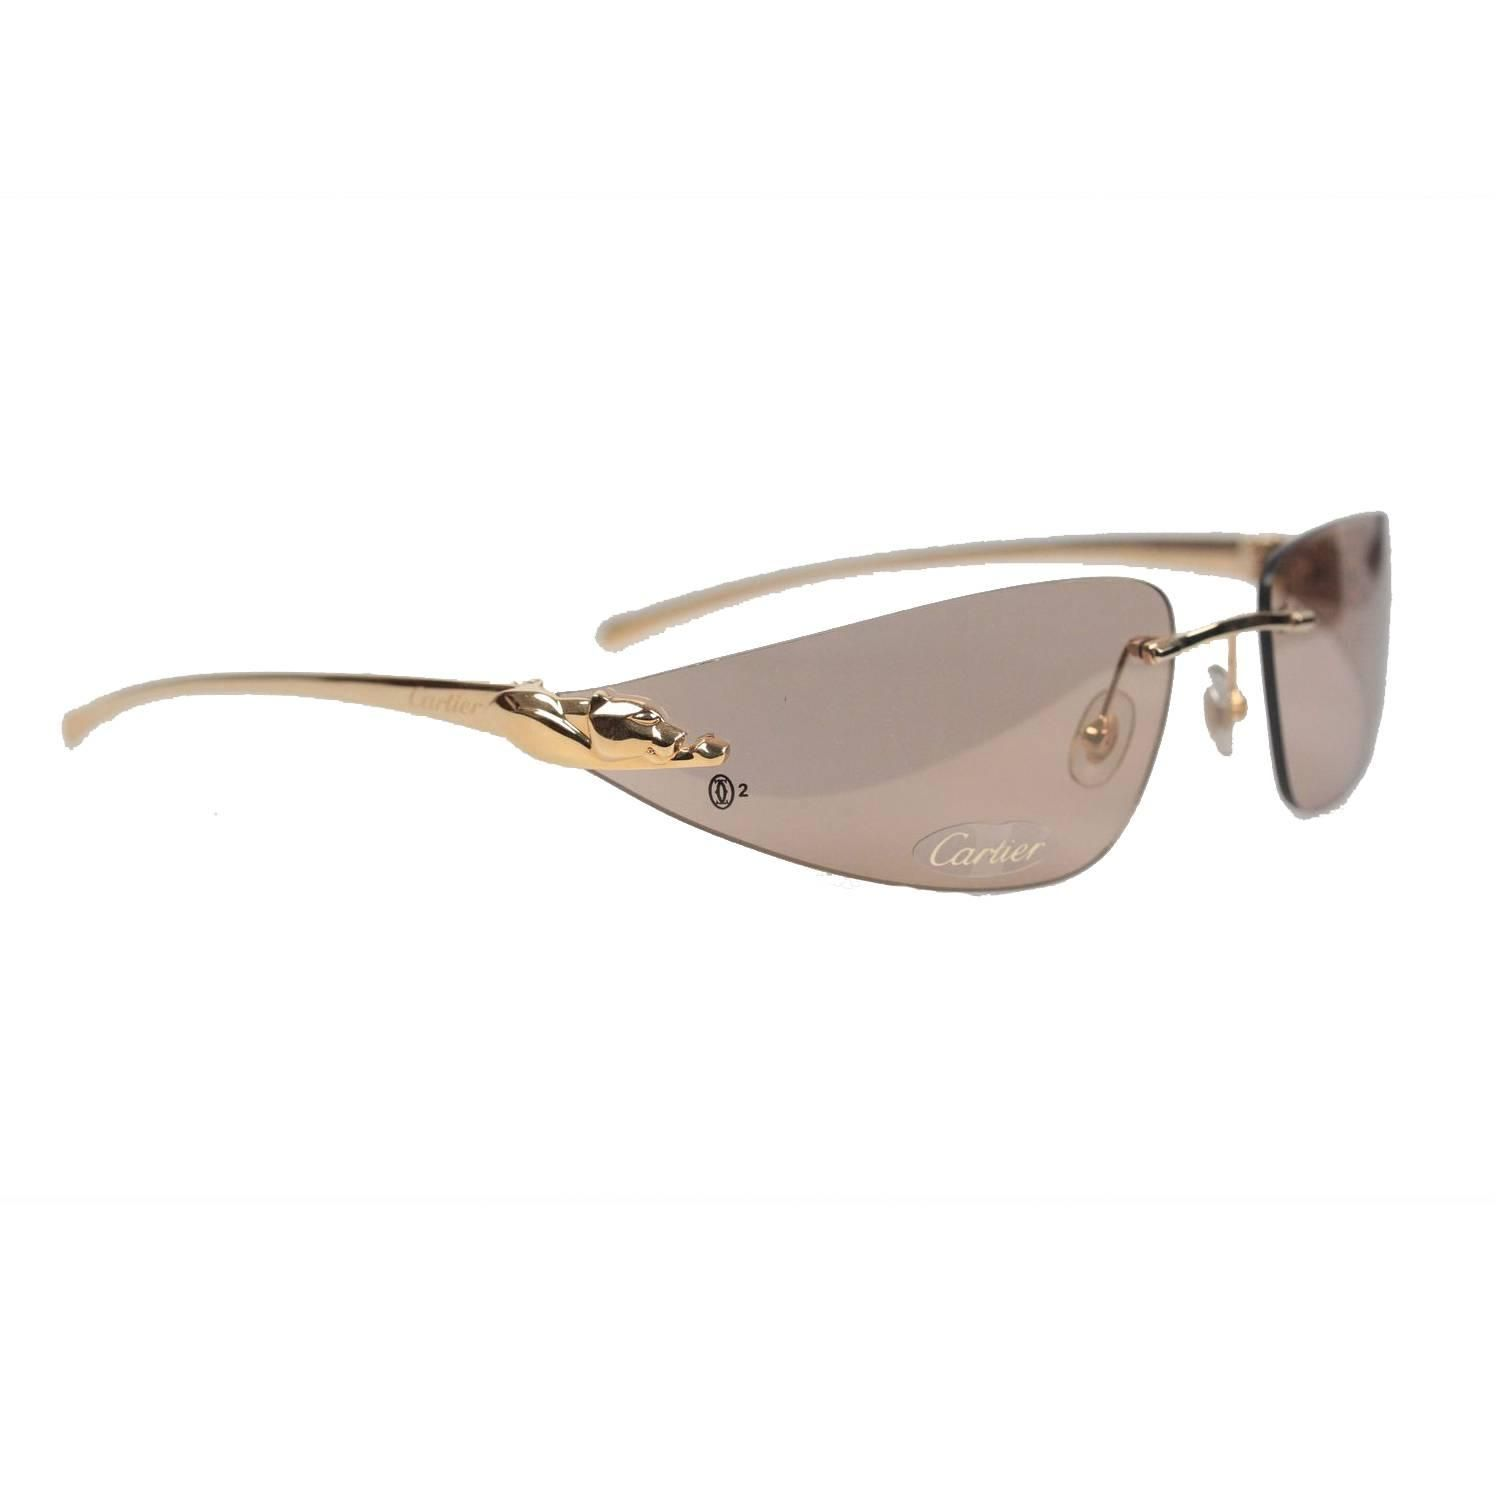 05ad0a1b310 Cartier Paris Sunglasses Panthere T8200611 Gold Brown 110 For Sale at  1stdibs